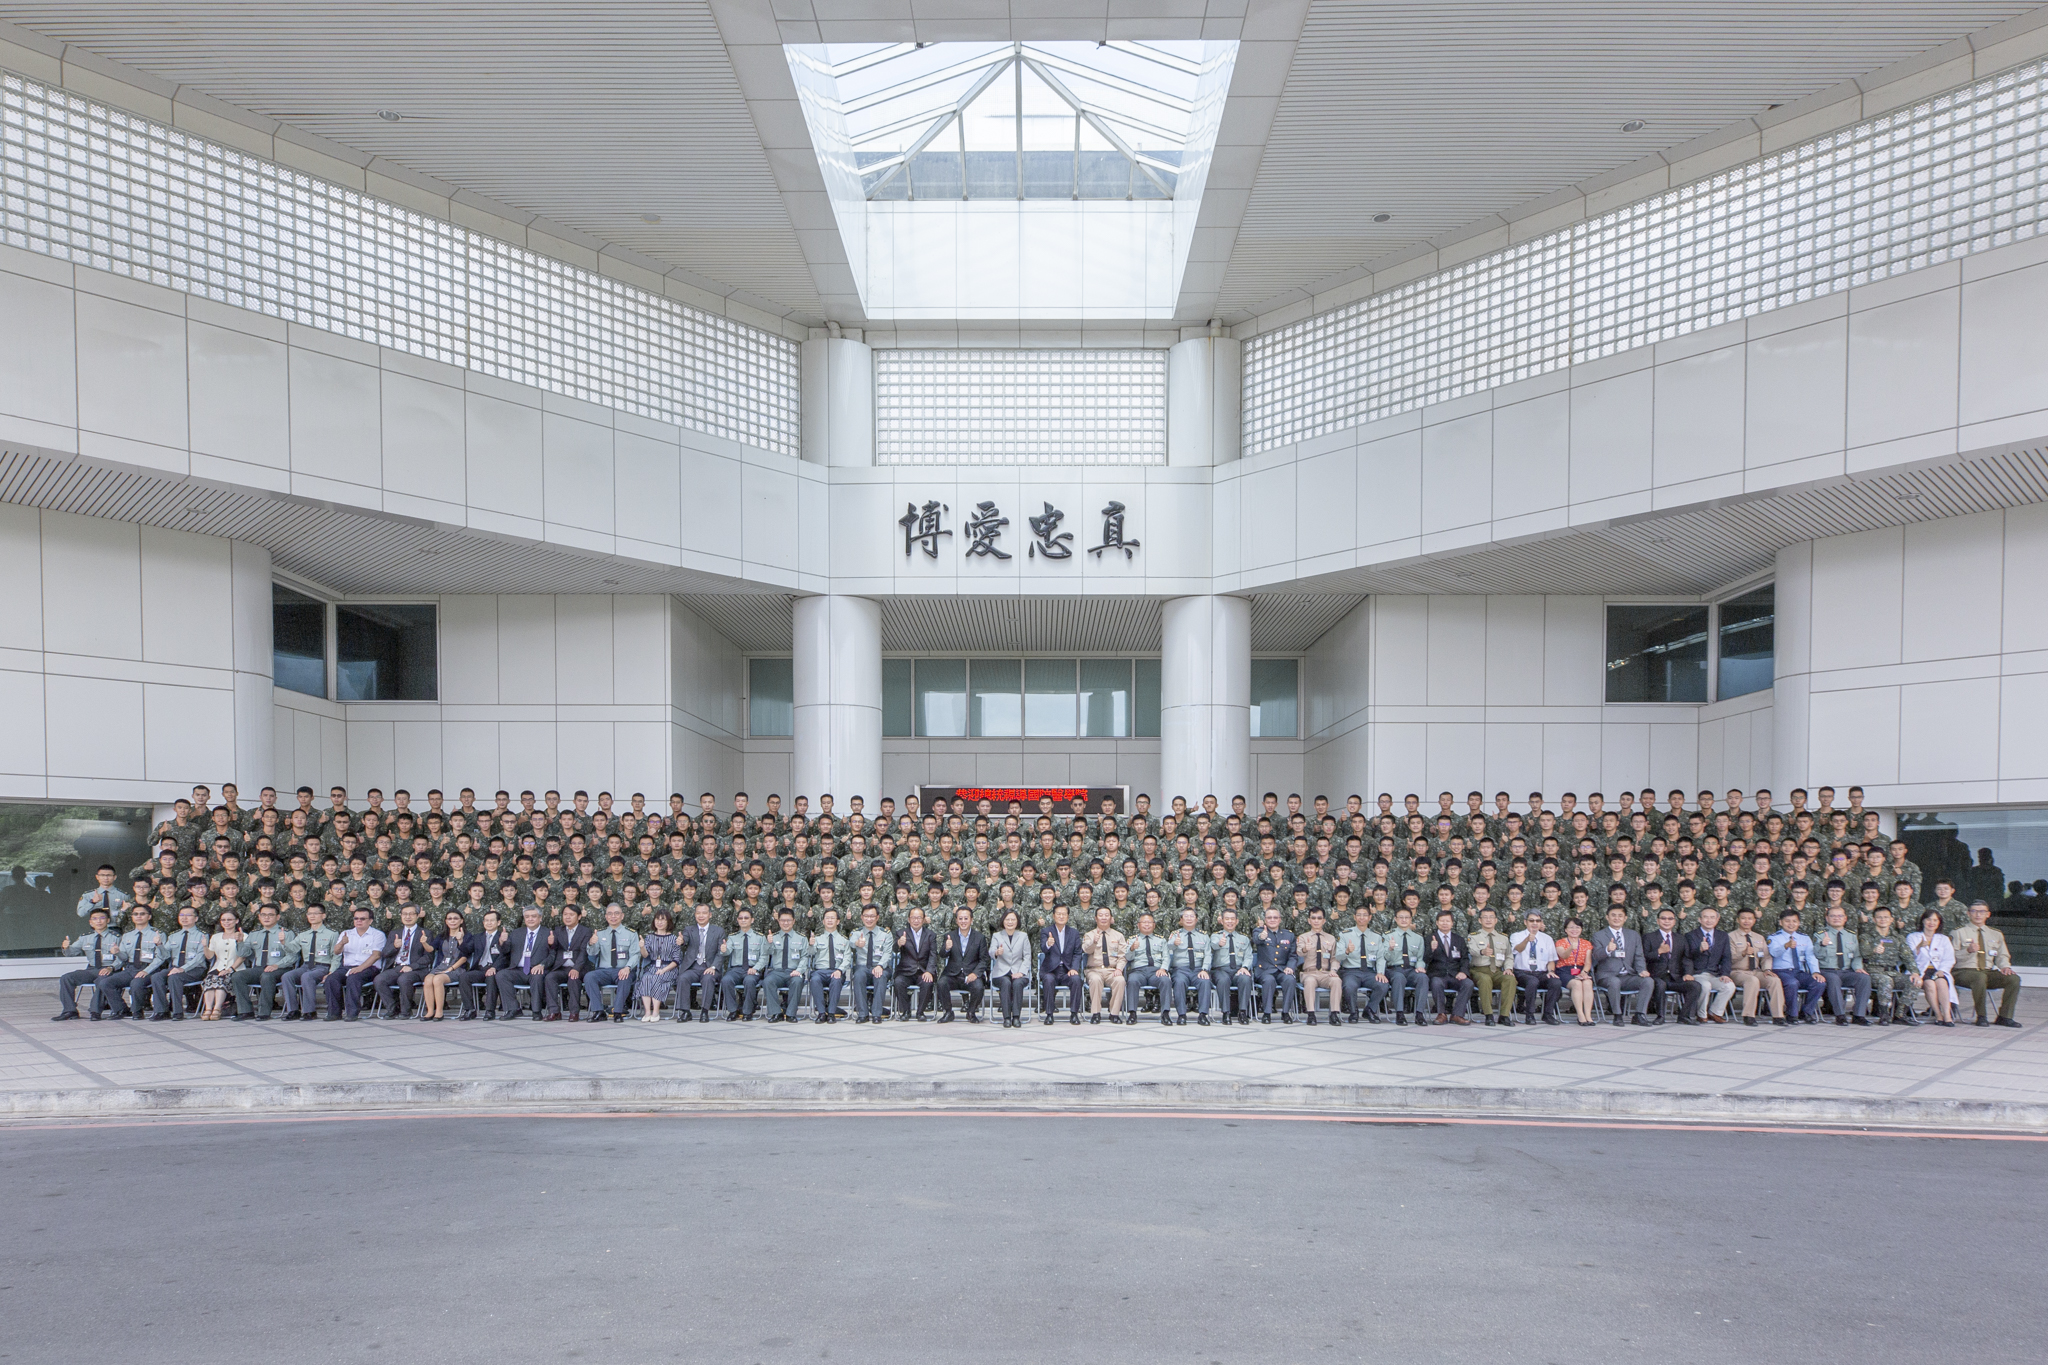 President Tsai Visited NDMC to Encourage Medics Support Our Military and Society